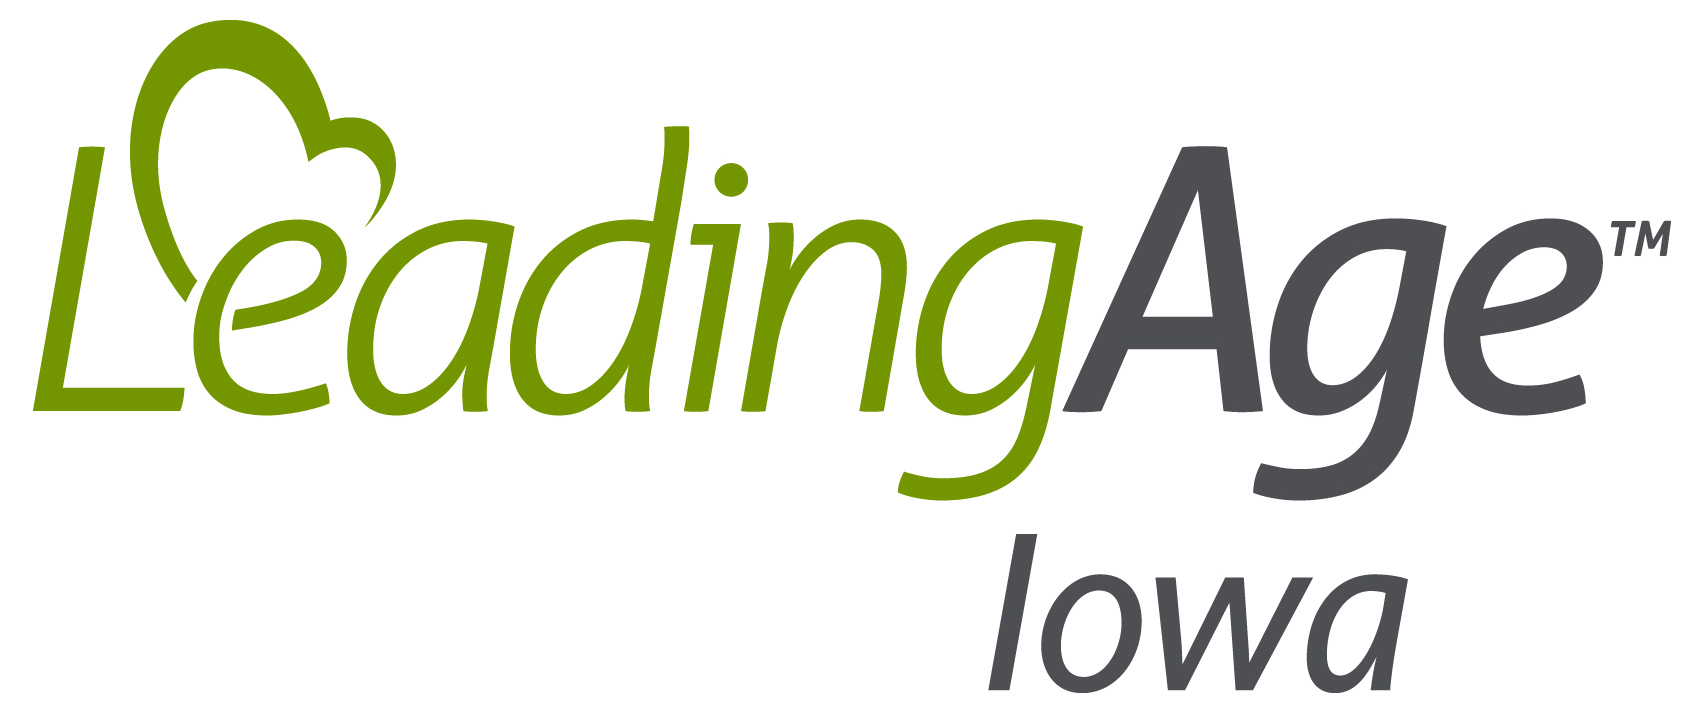 LeadingAge Iowa Spring Conference 2019 Banner Image